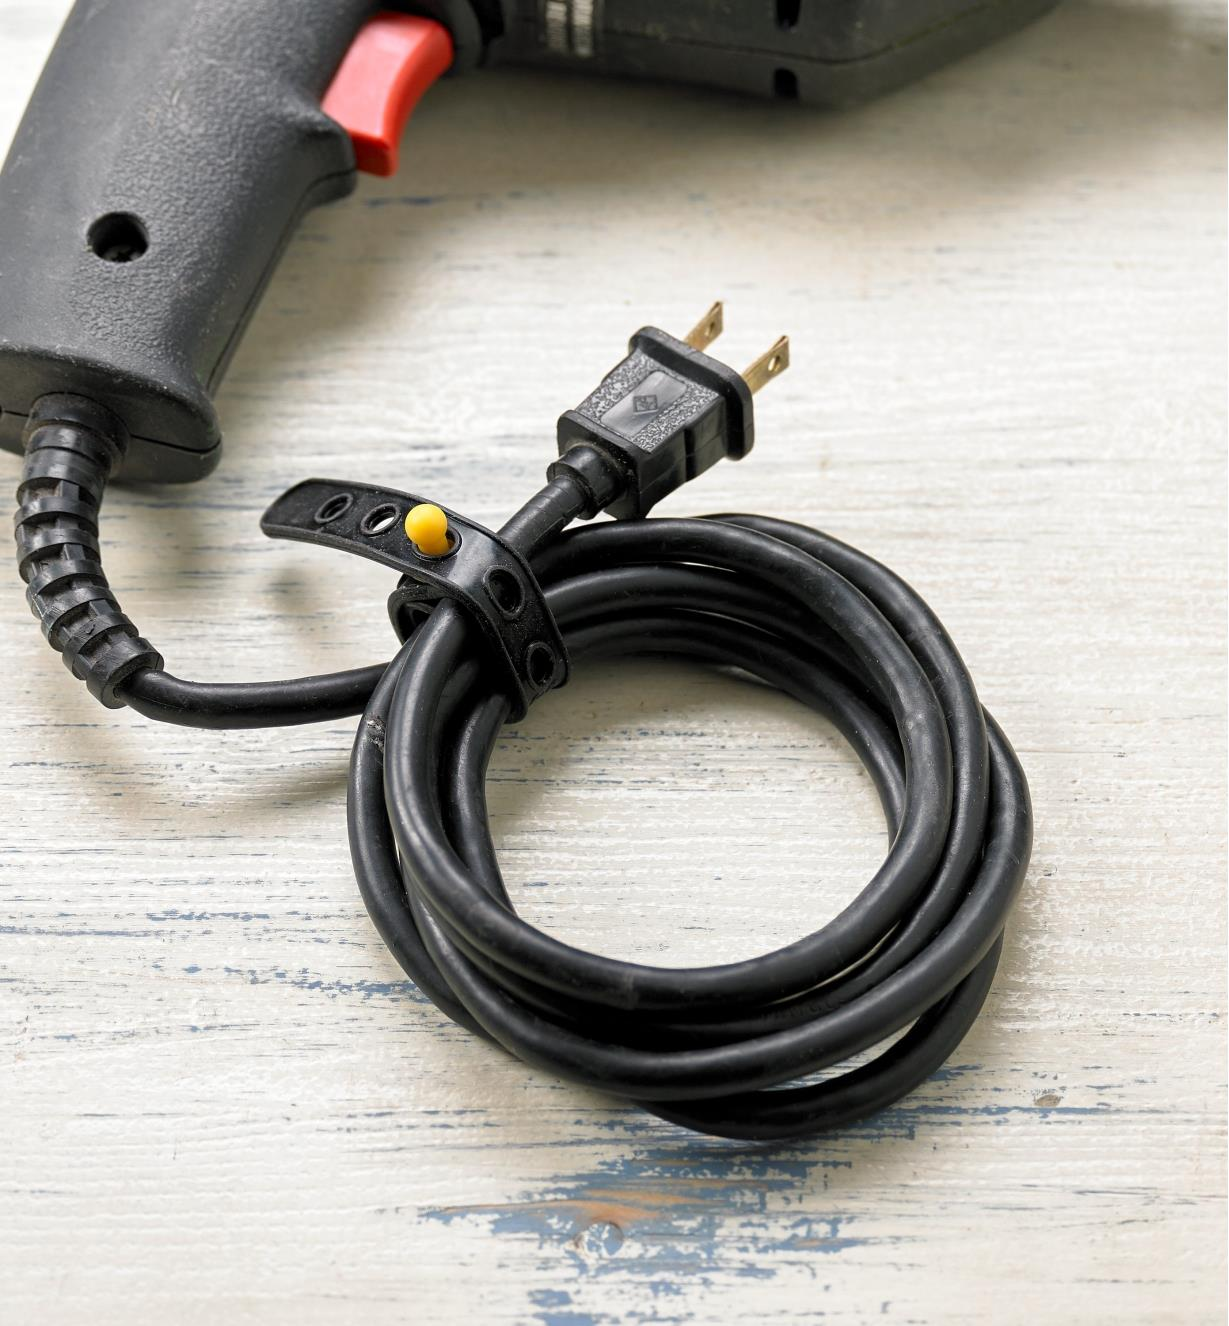 A tool electrical cord secured with a Wrap-N-Strap